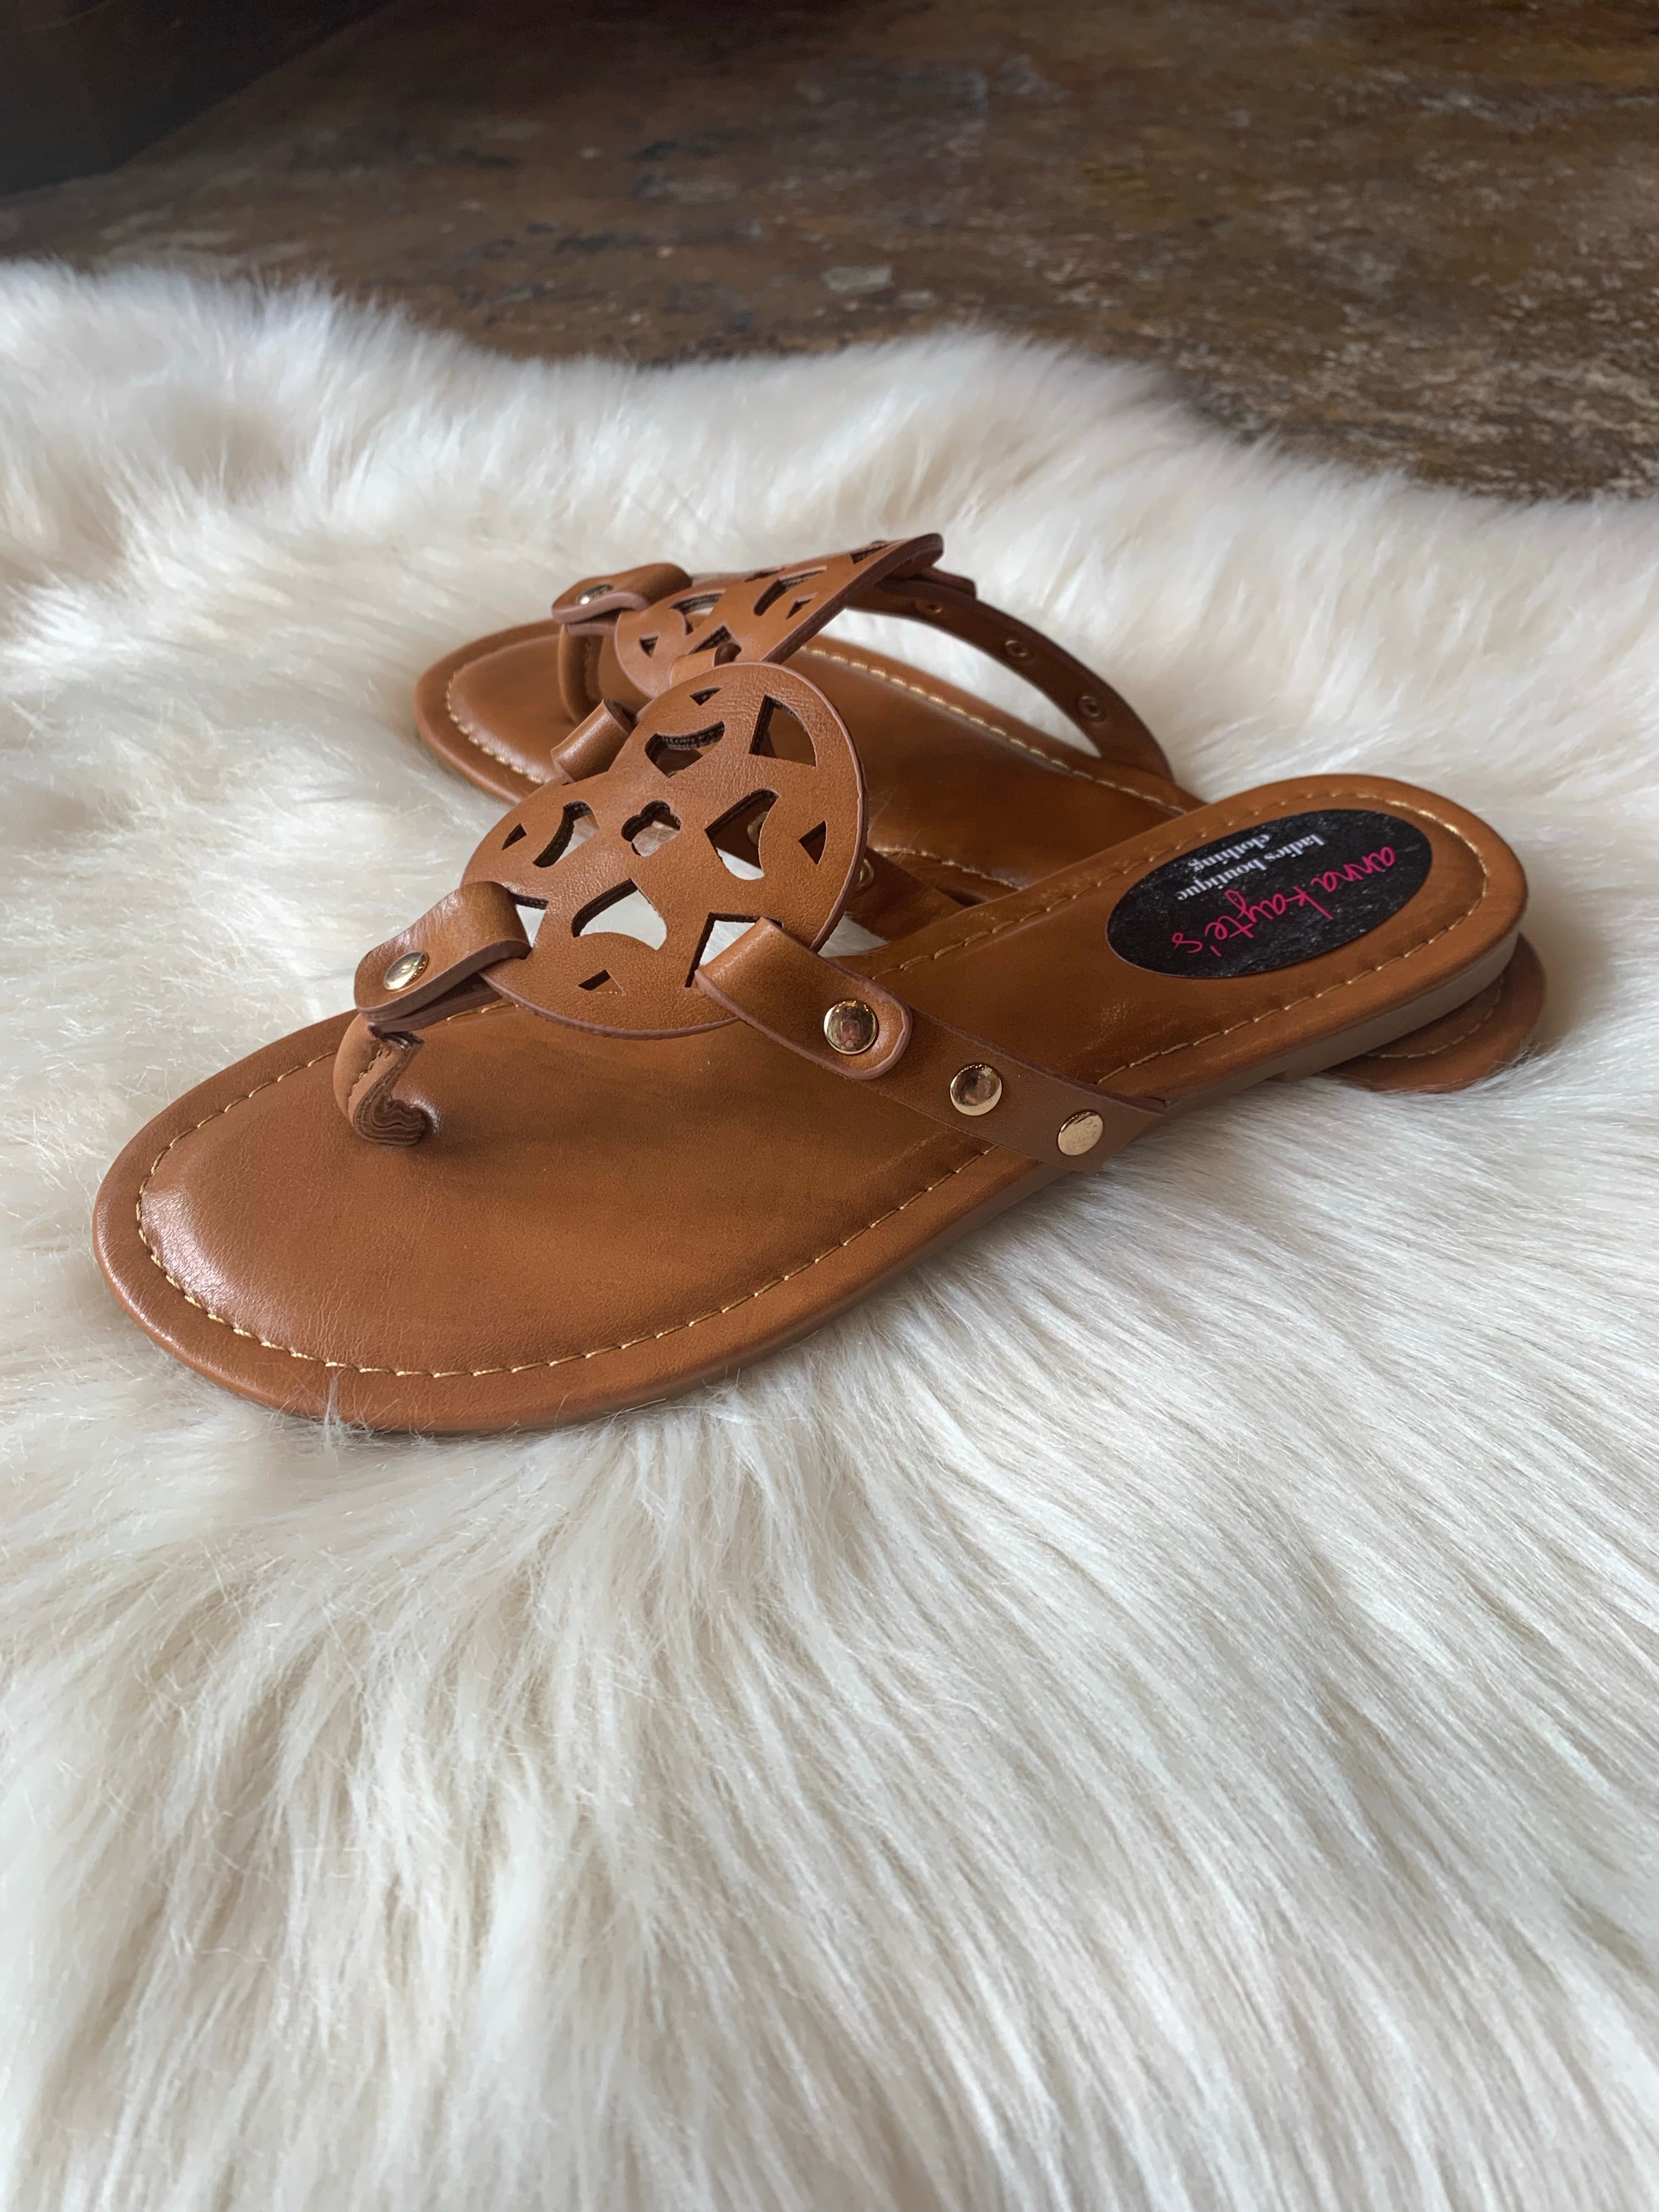 Travel Bound Inspired Tan Sandals